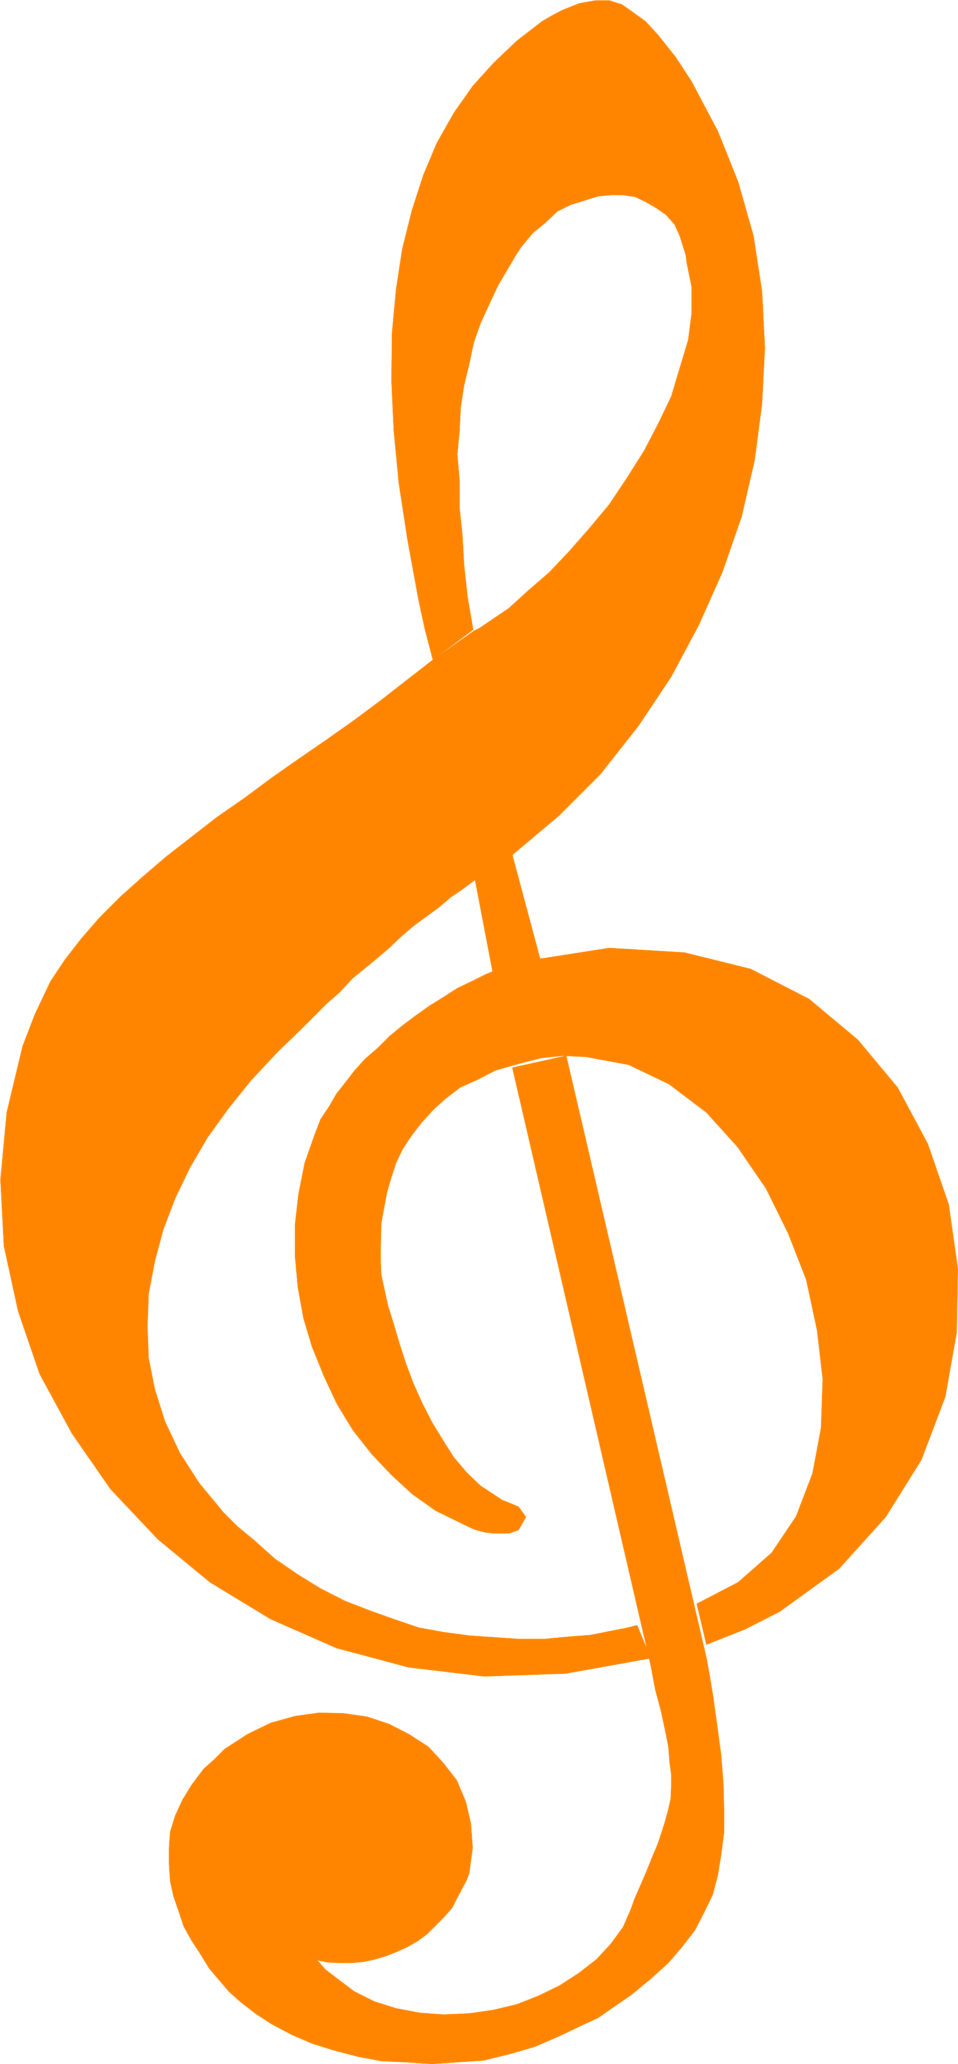 Free stock photo illustration of an orange treble clef music free stock photo illustration of an orange treble clef music symbol buycottarizona